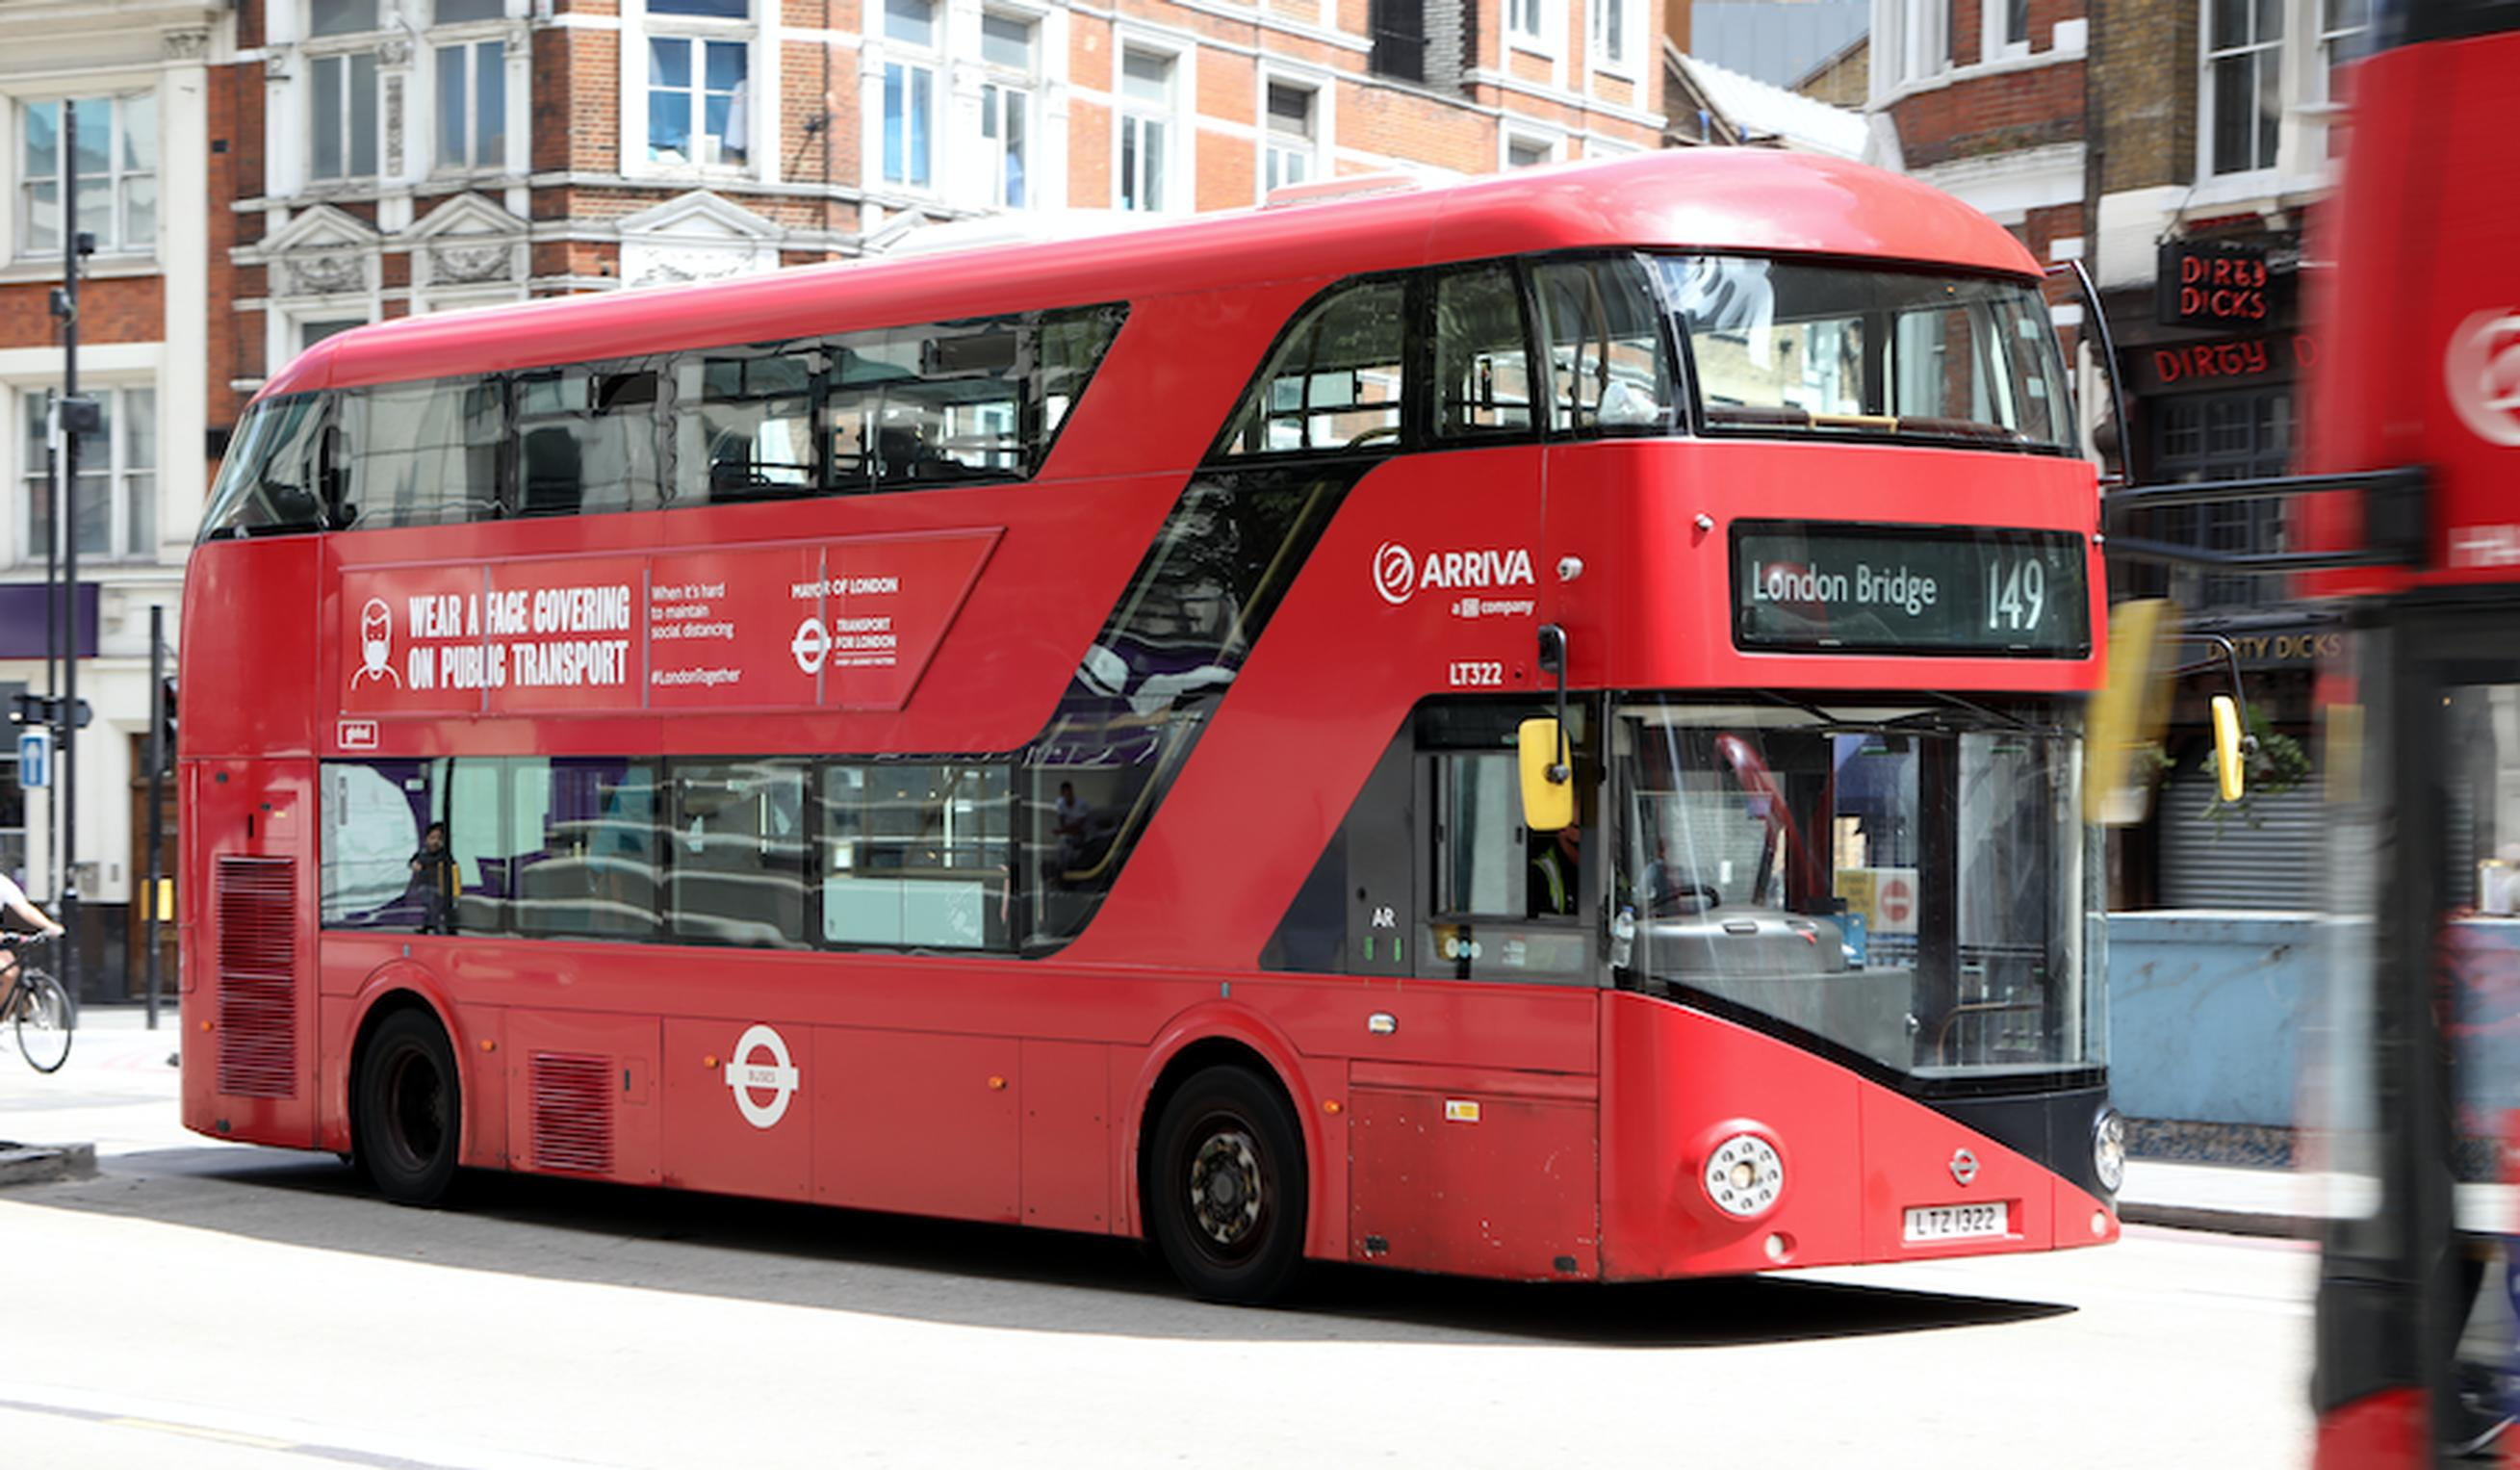 TfL plans to operate its bus lanes 24 hours a day